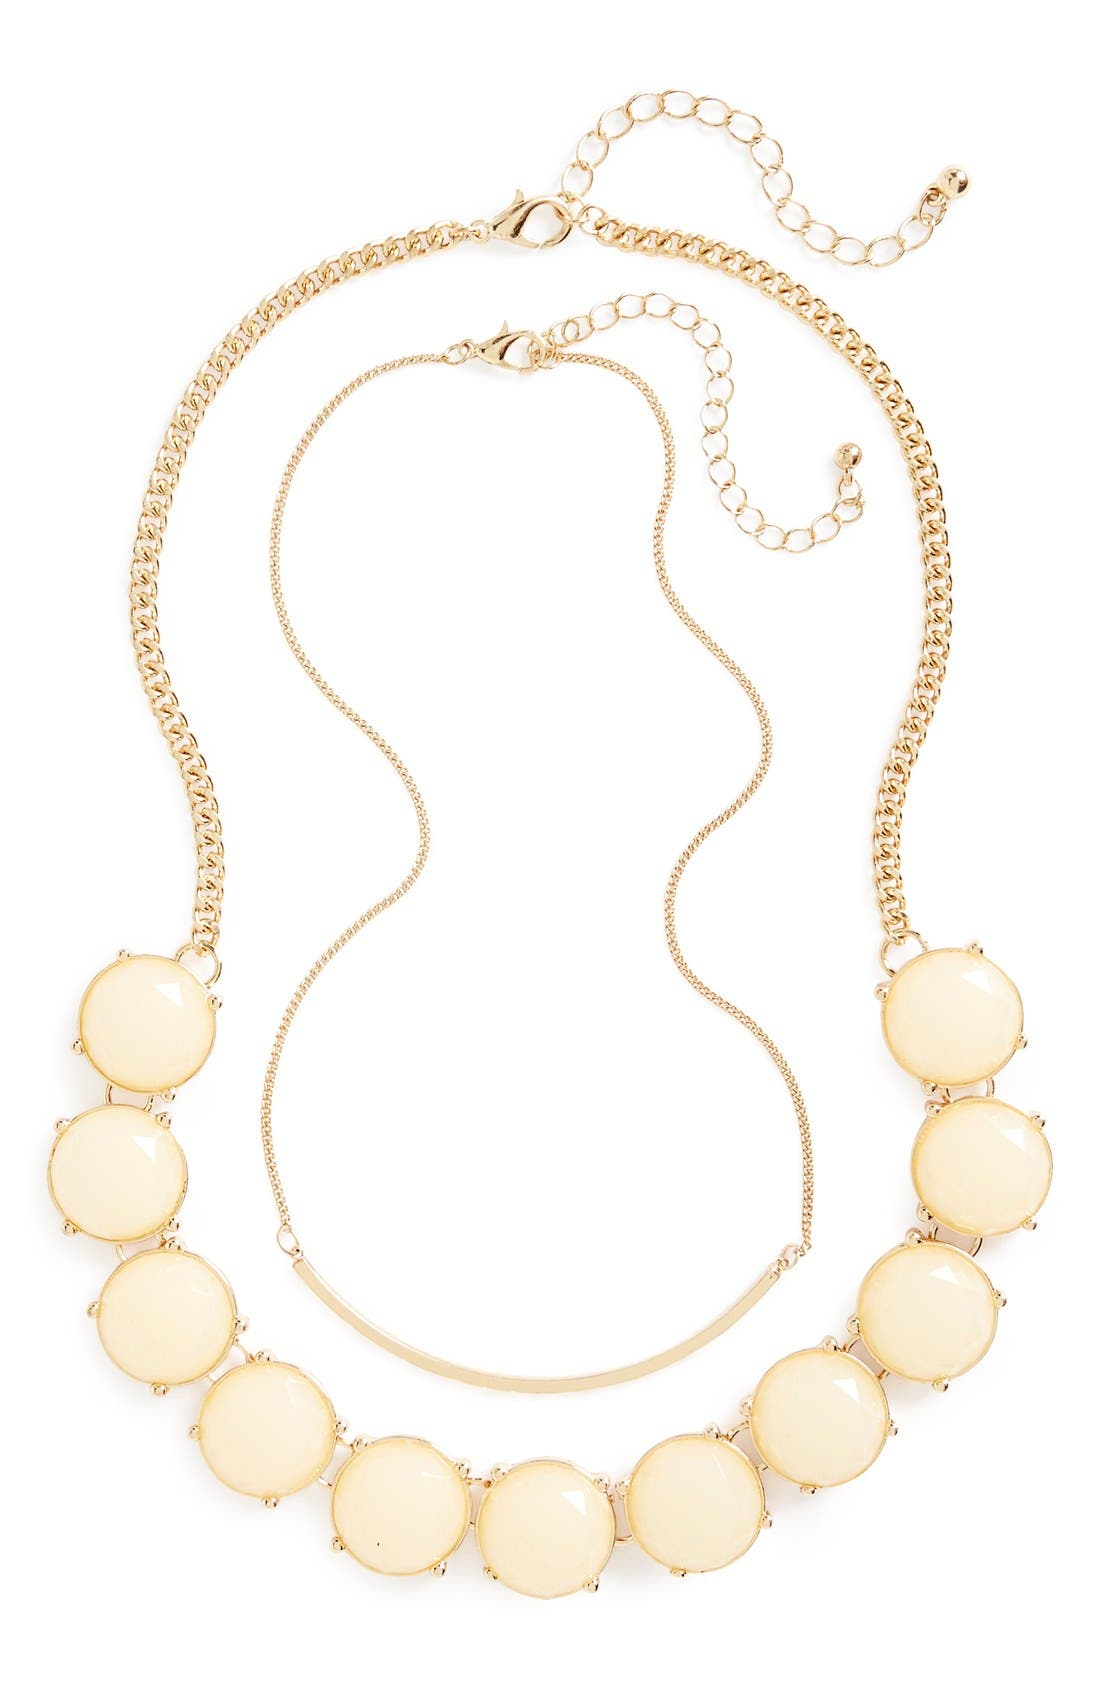 Alternate Image 1 Selected - BP. Bar & Round Stone Layered Necklaces (Set of 2)